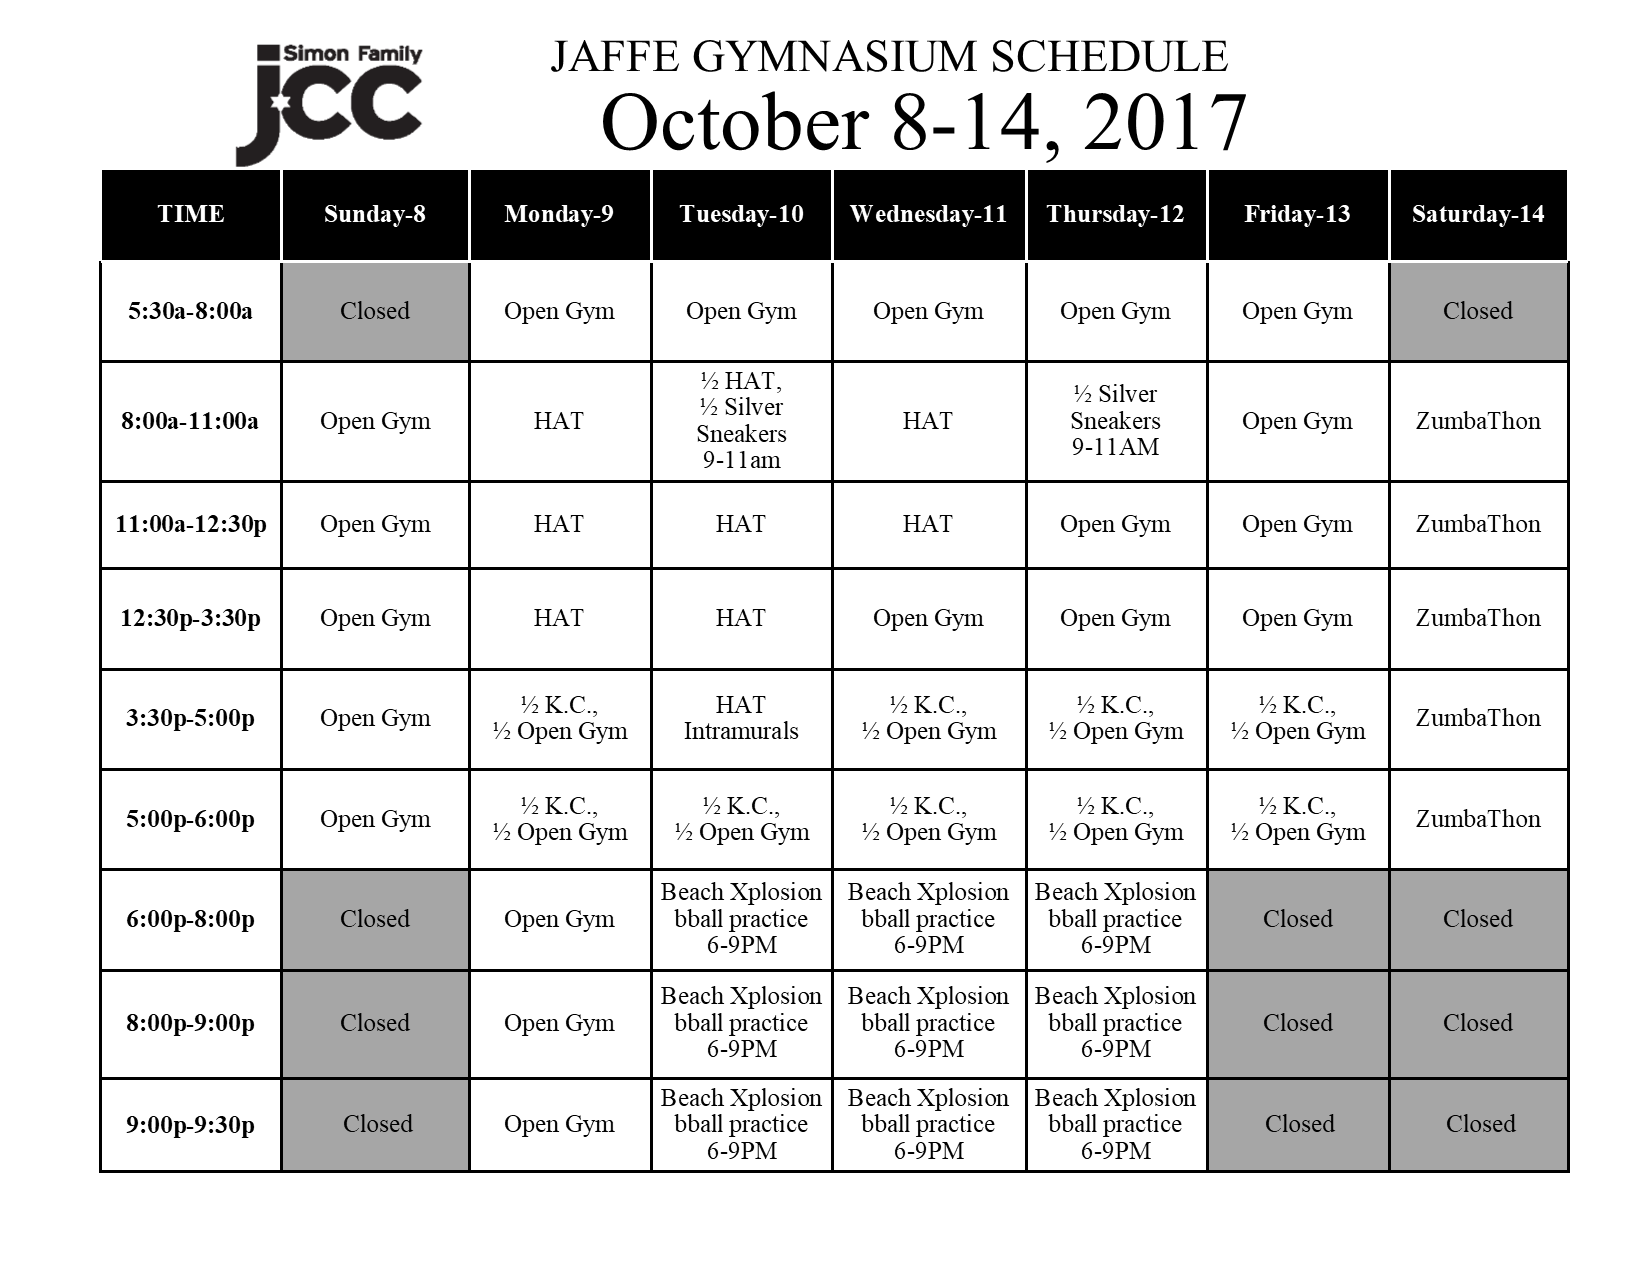 October 8-14 2017 Jaffe Gym Schedule